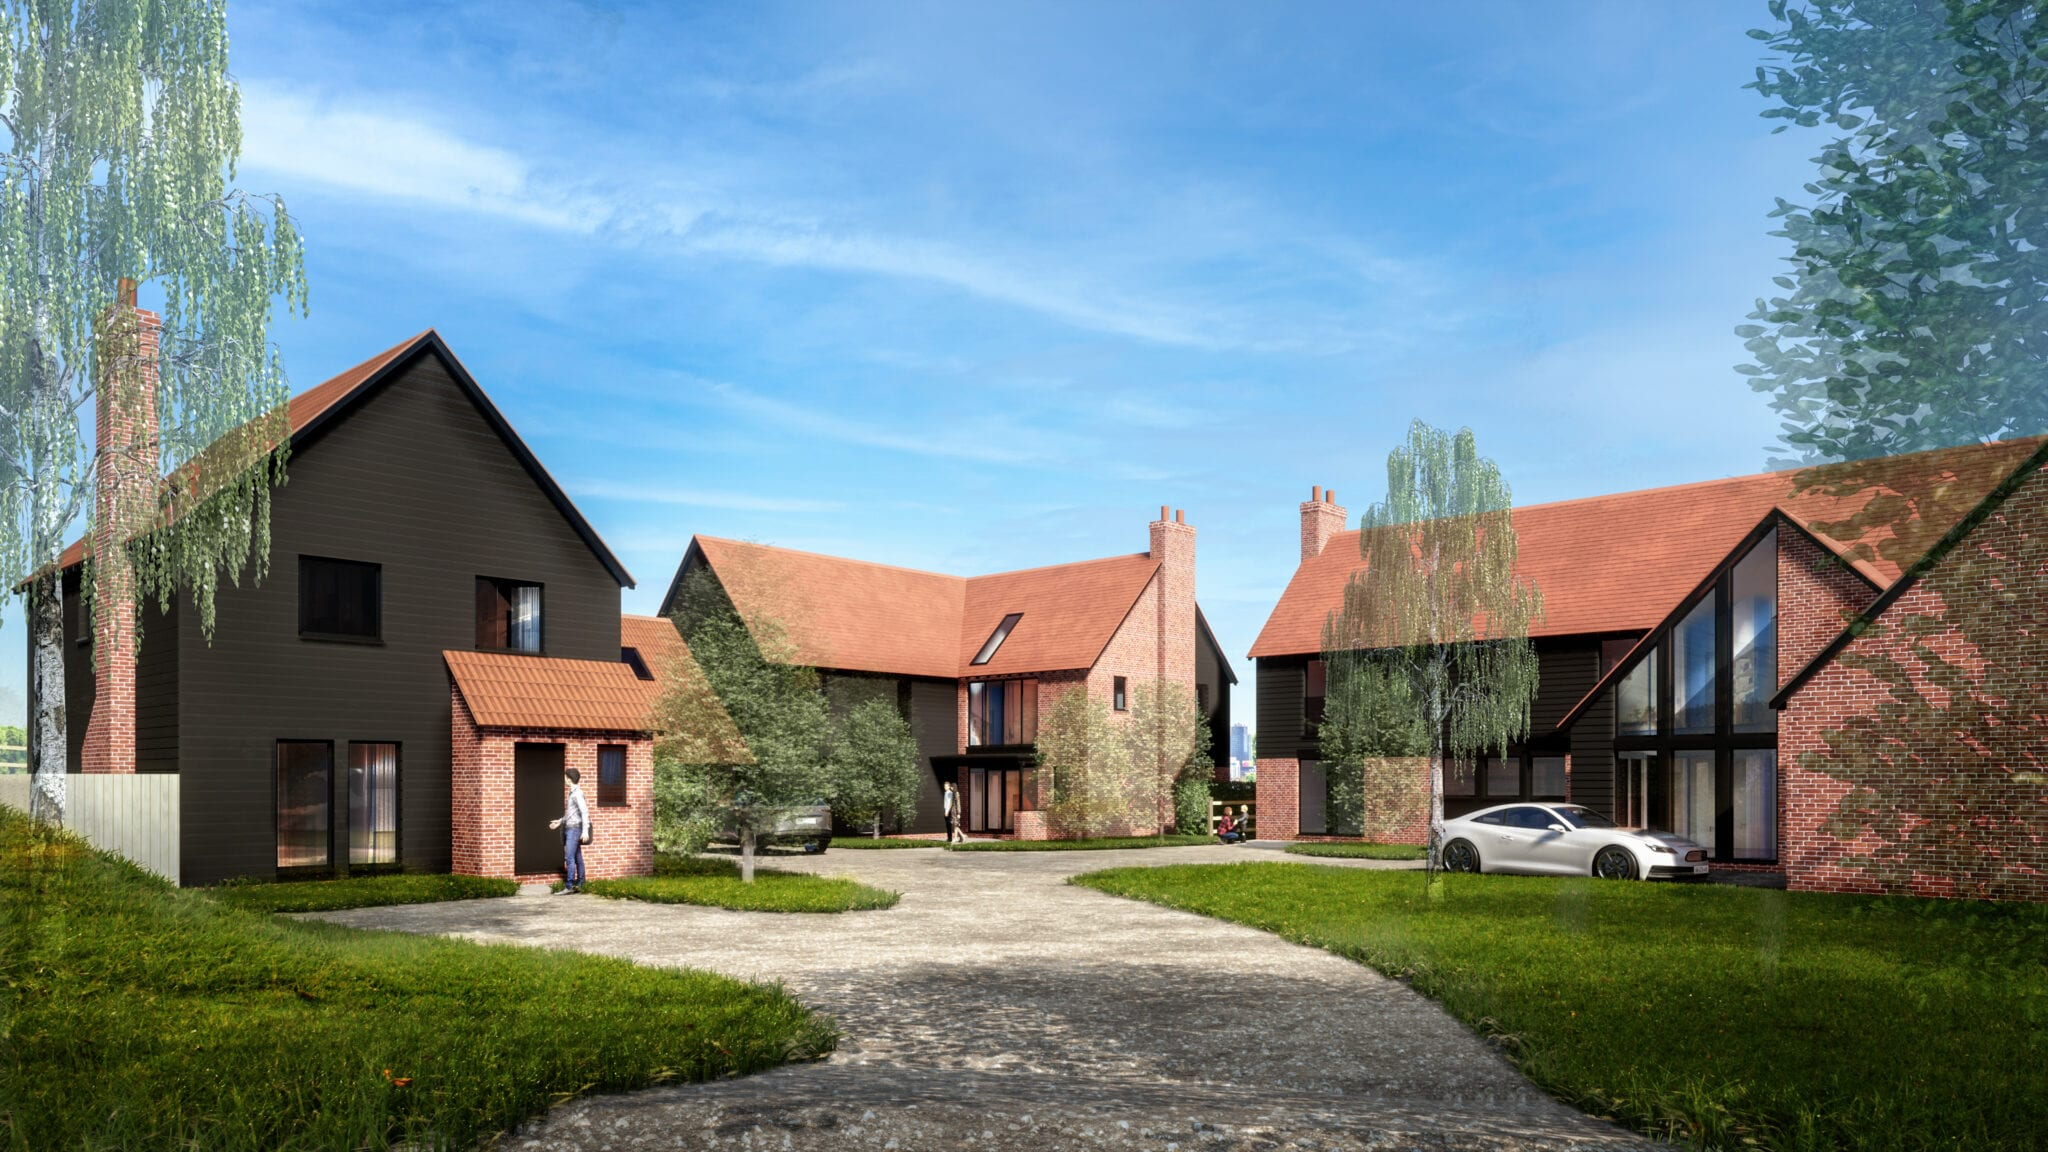 Planning Submitted for 3 New Village Houses…